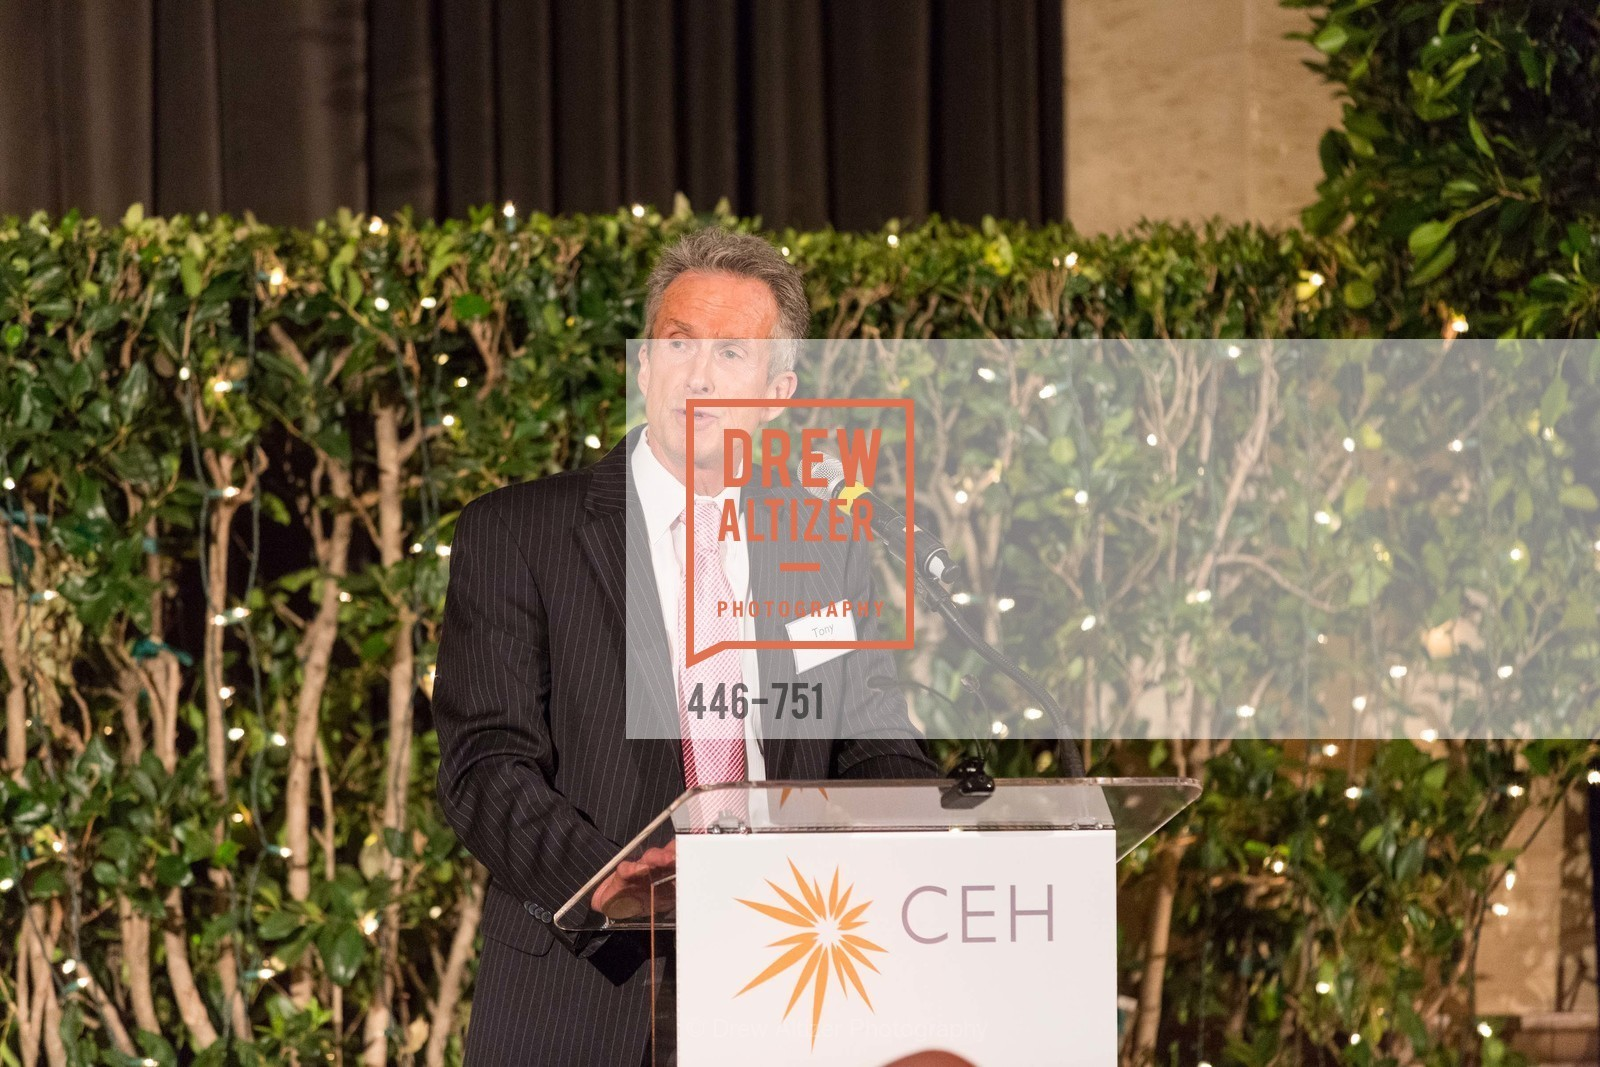 Tony Stefani, CENTER FOR ENVIRONMENTAL HEALTH (CEH) 2015 Gala, Bently Reserve, May 28th, 2015,Drew Altizer, Drew Altizer Photography, full-service agency, private events, San Francisco photographer, photographer california